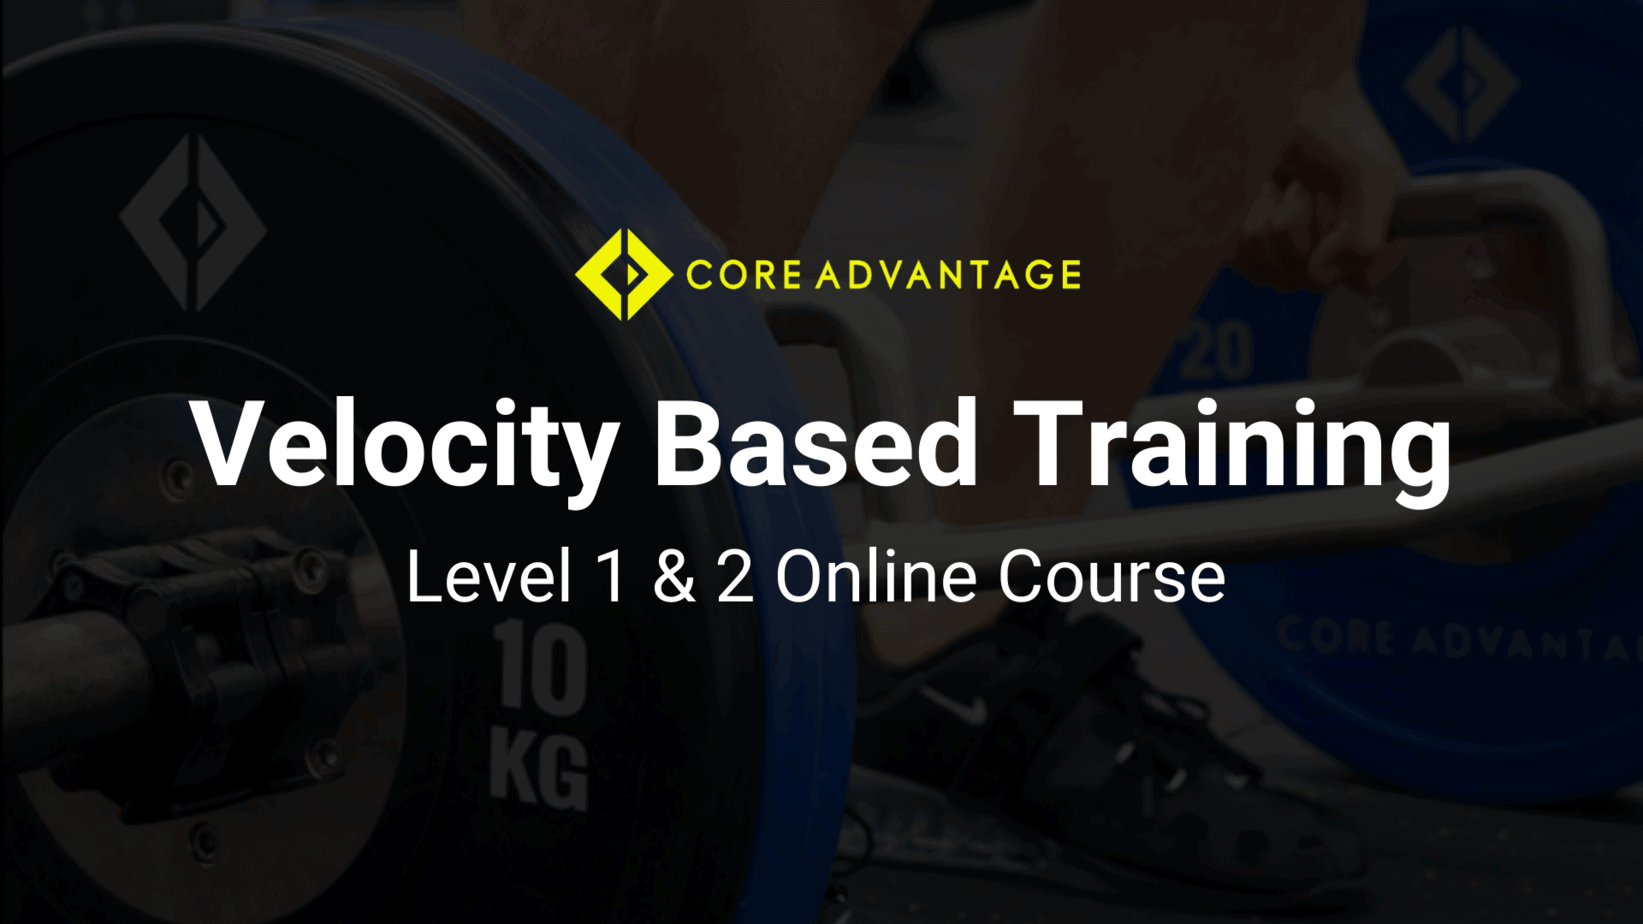 Core Advantage - Velocity Based Training